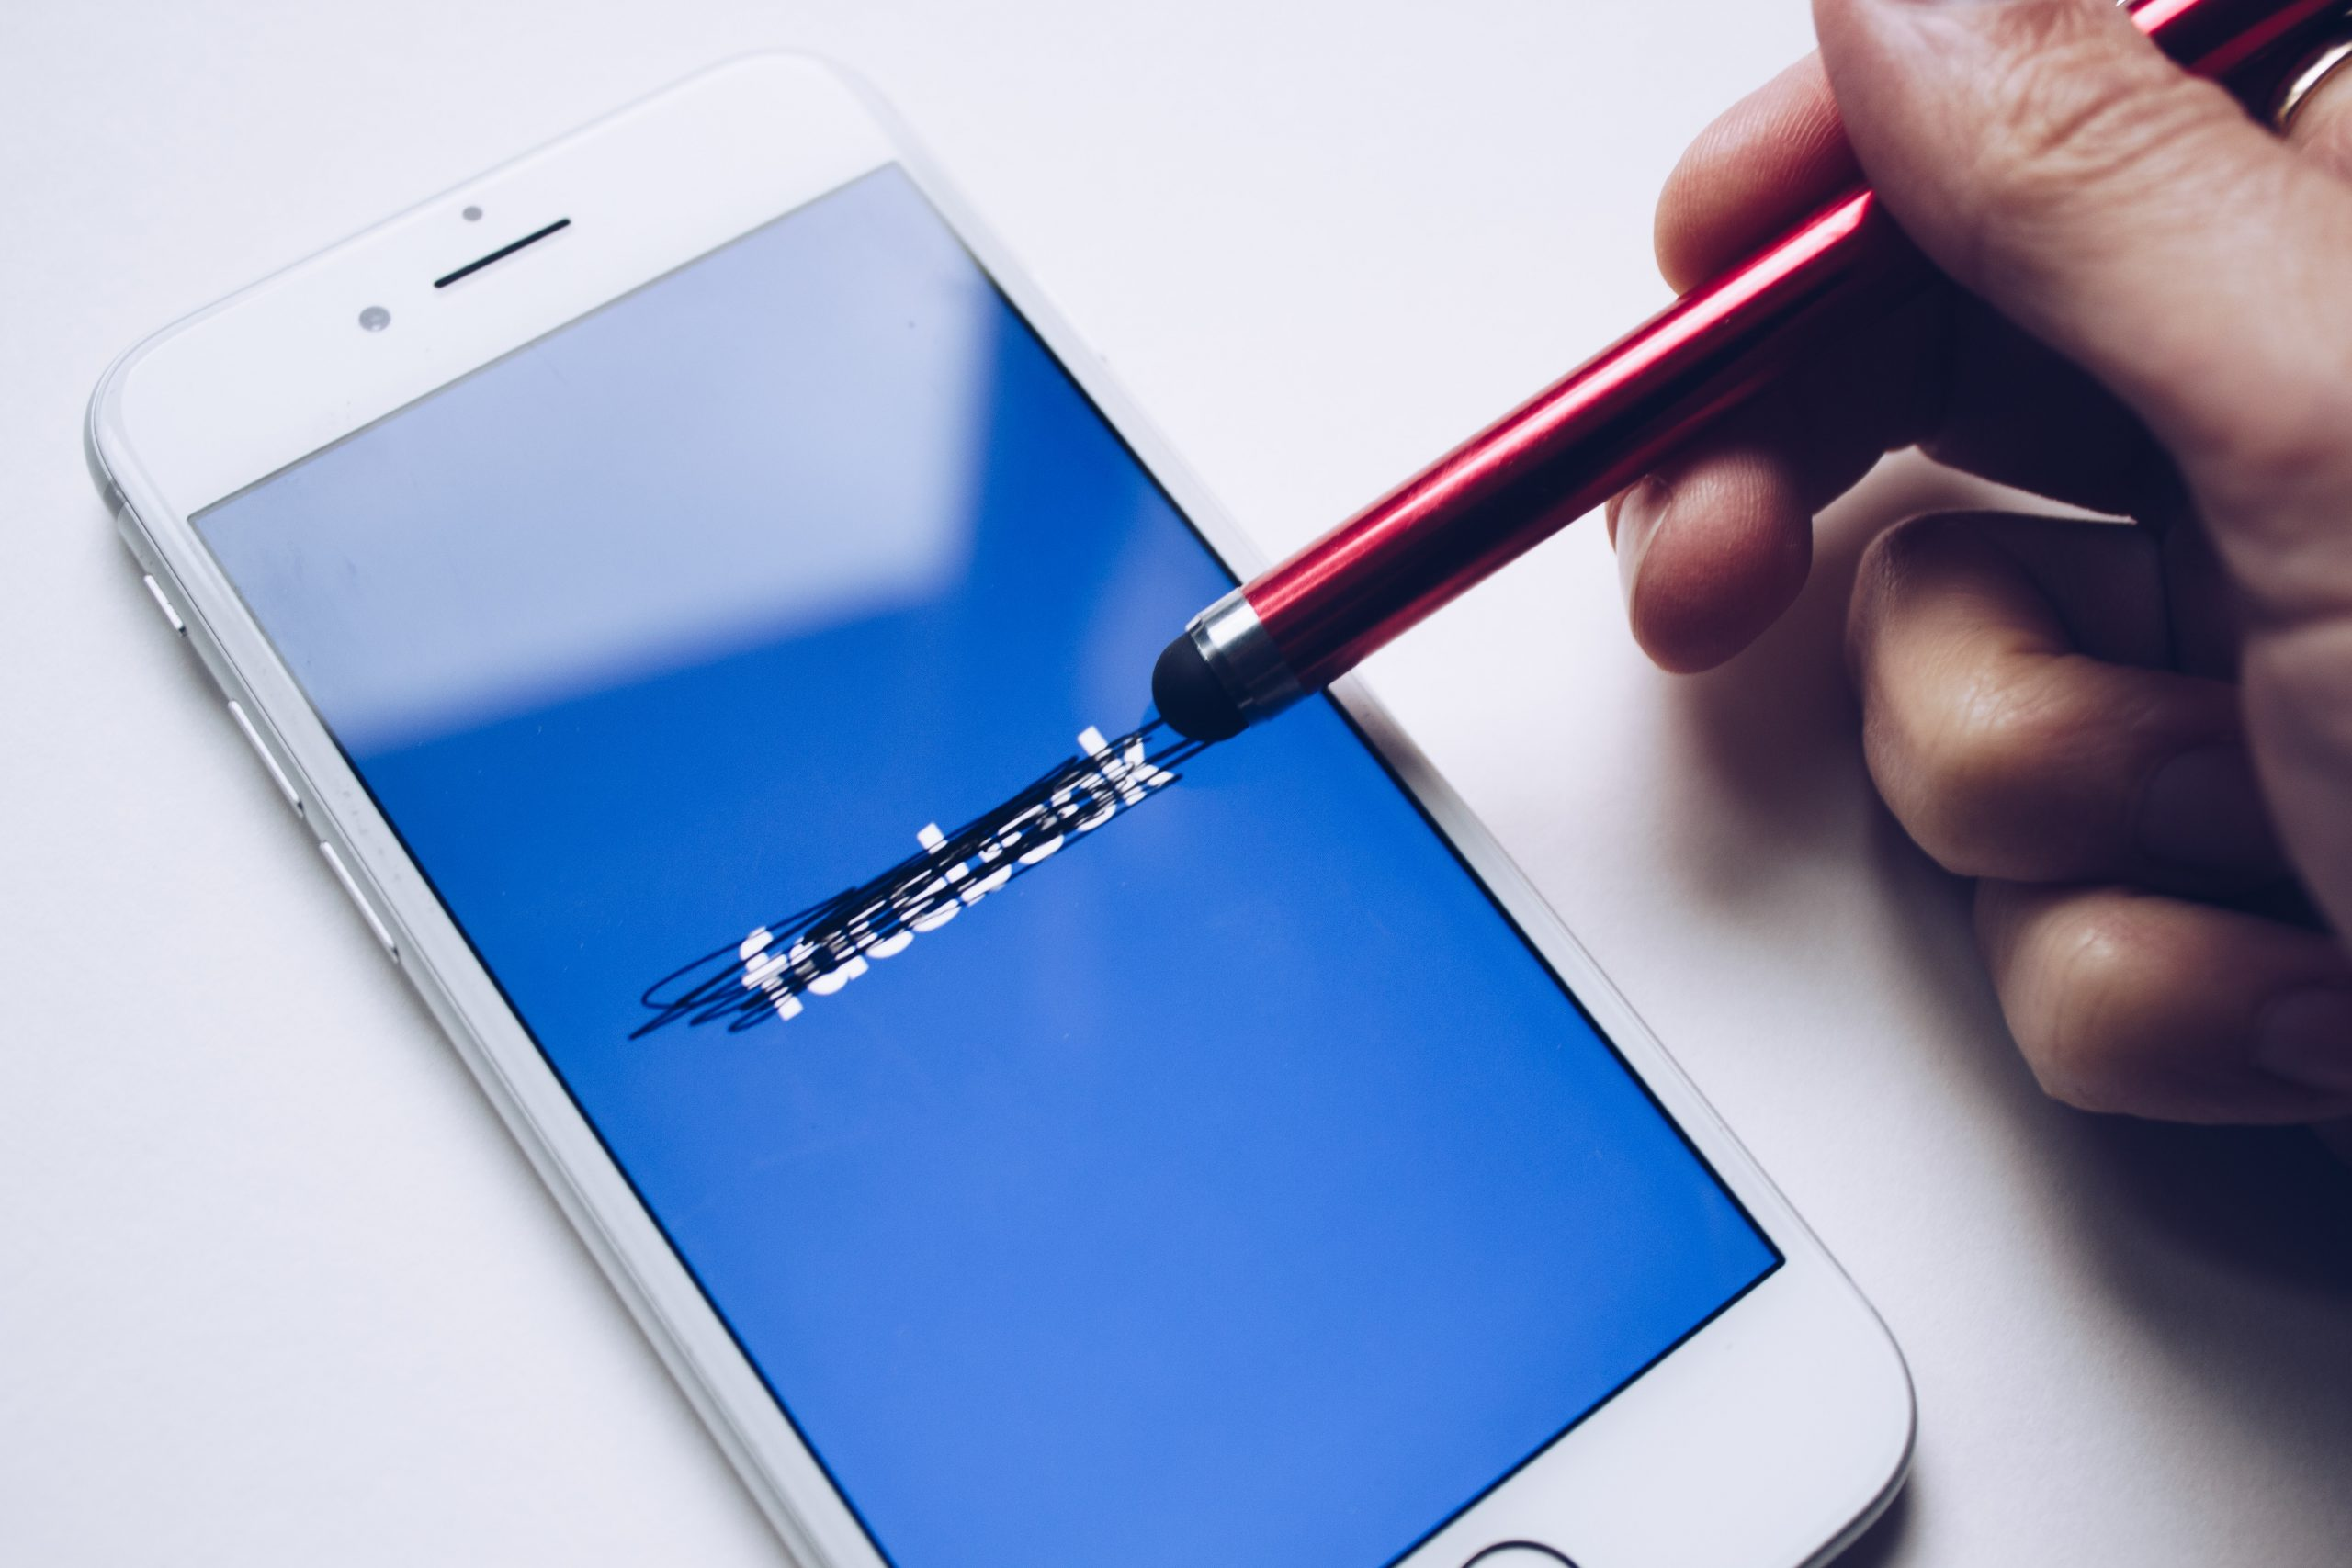 an iphone screen showing the facebook logo being cancelled out in black with a stylus pen